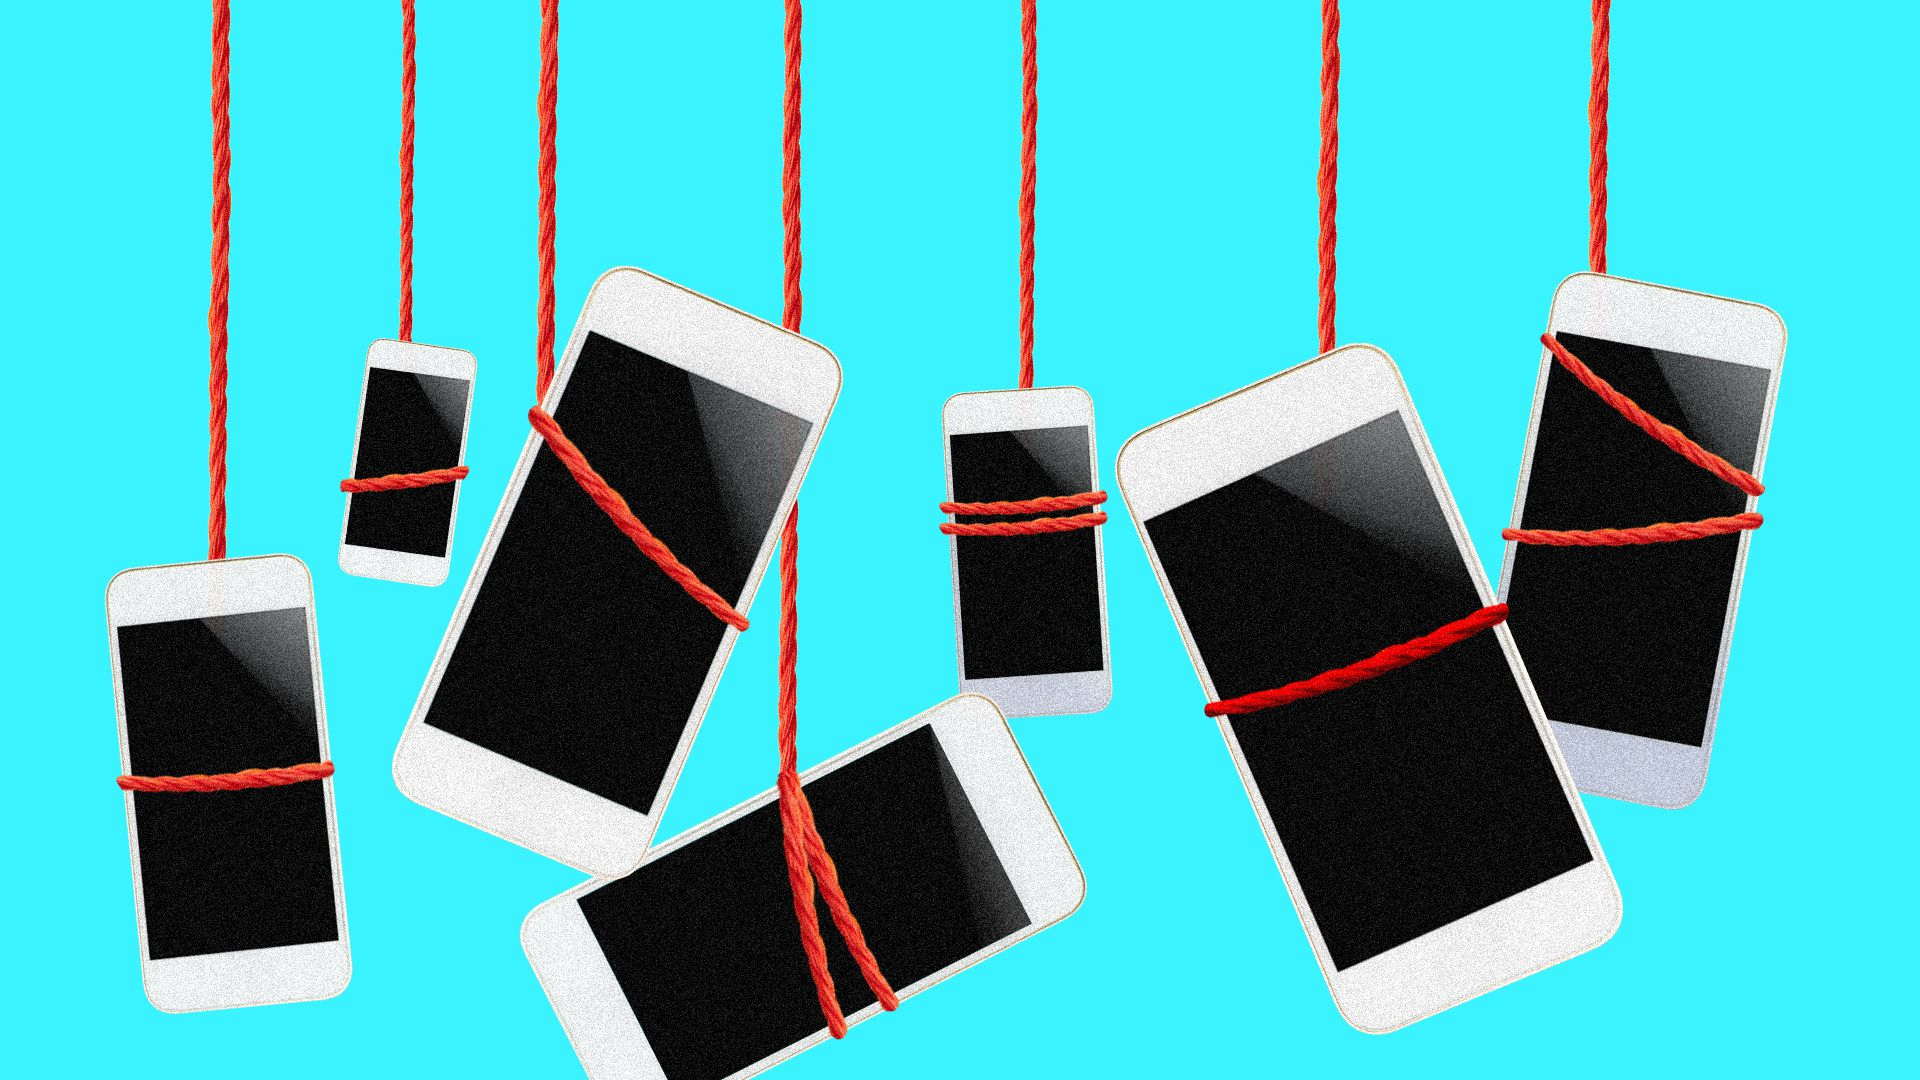 Illustration of smartphones dangling from ropes